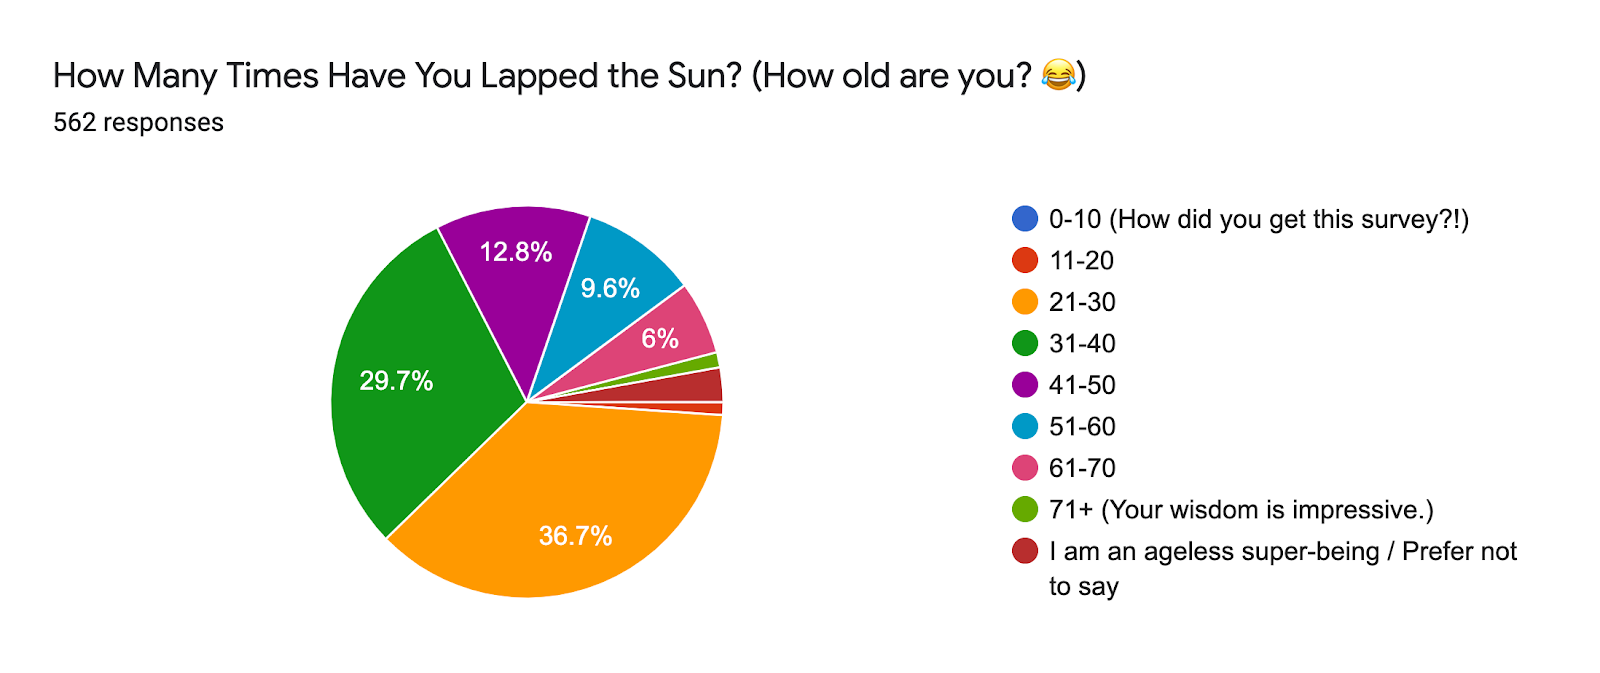 Forms response chart. Question title: How Many Times Have You Lapped the Sun? (How old are you? 😂). Number of responses: 562 responses.